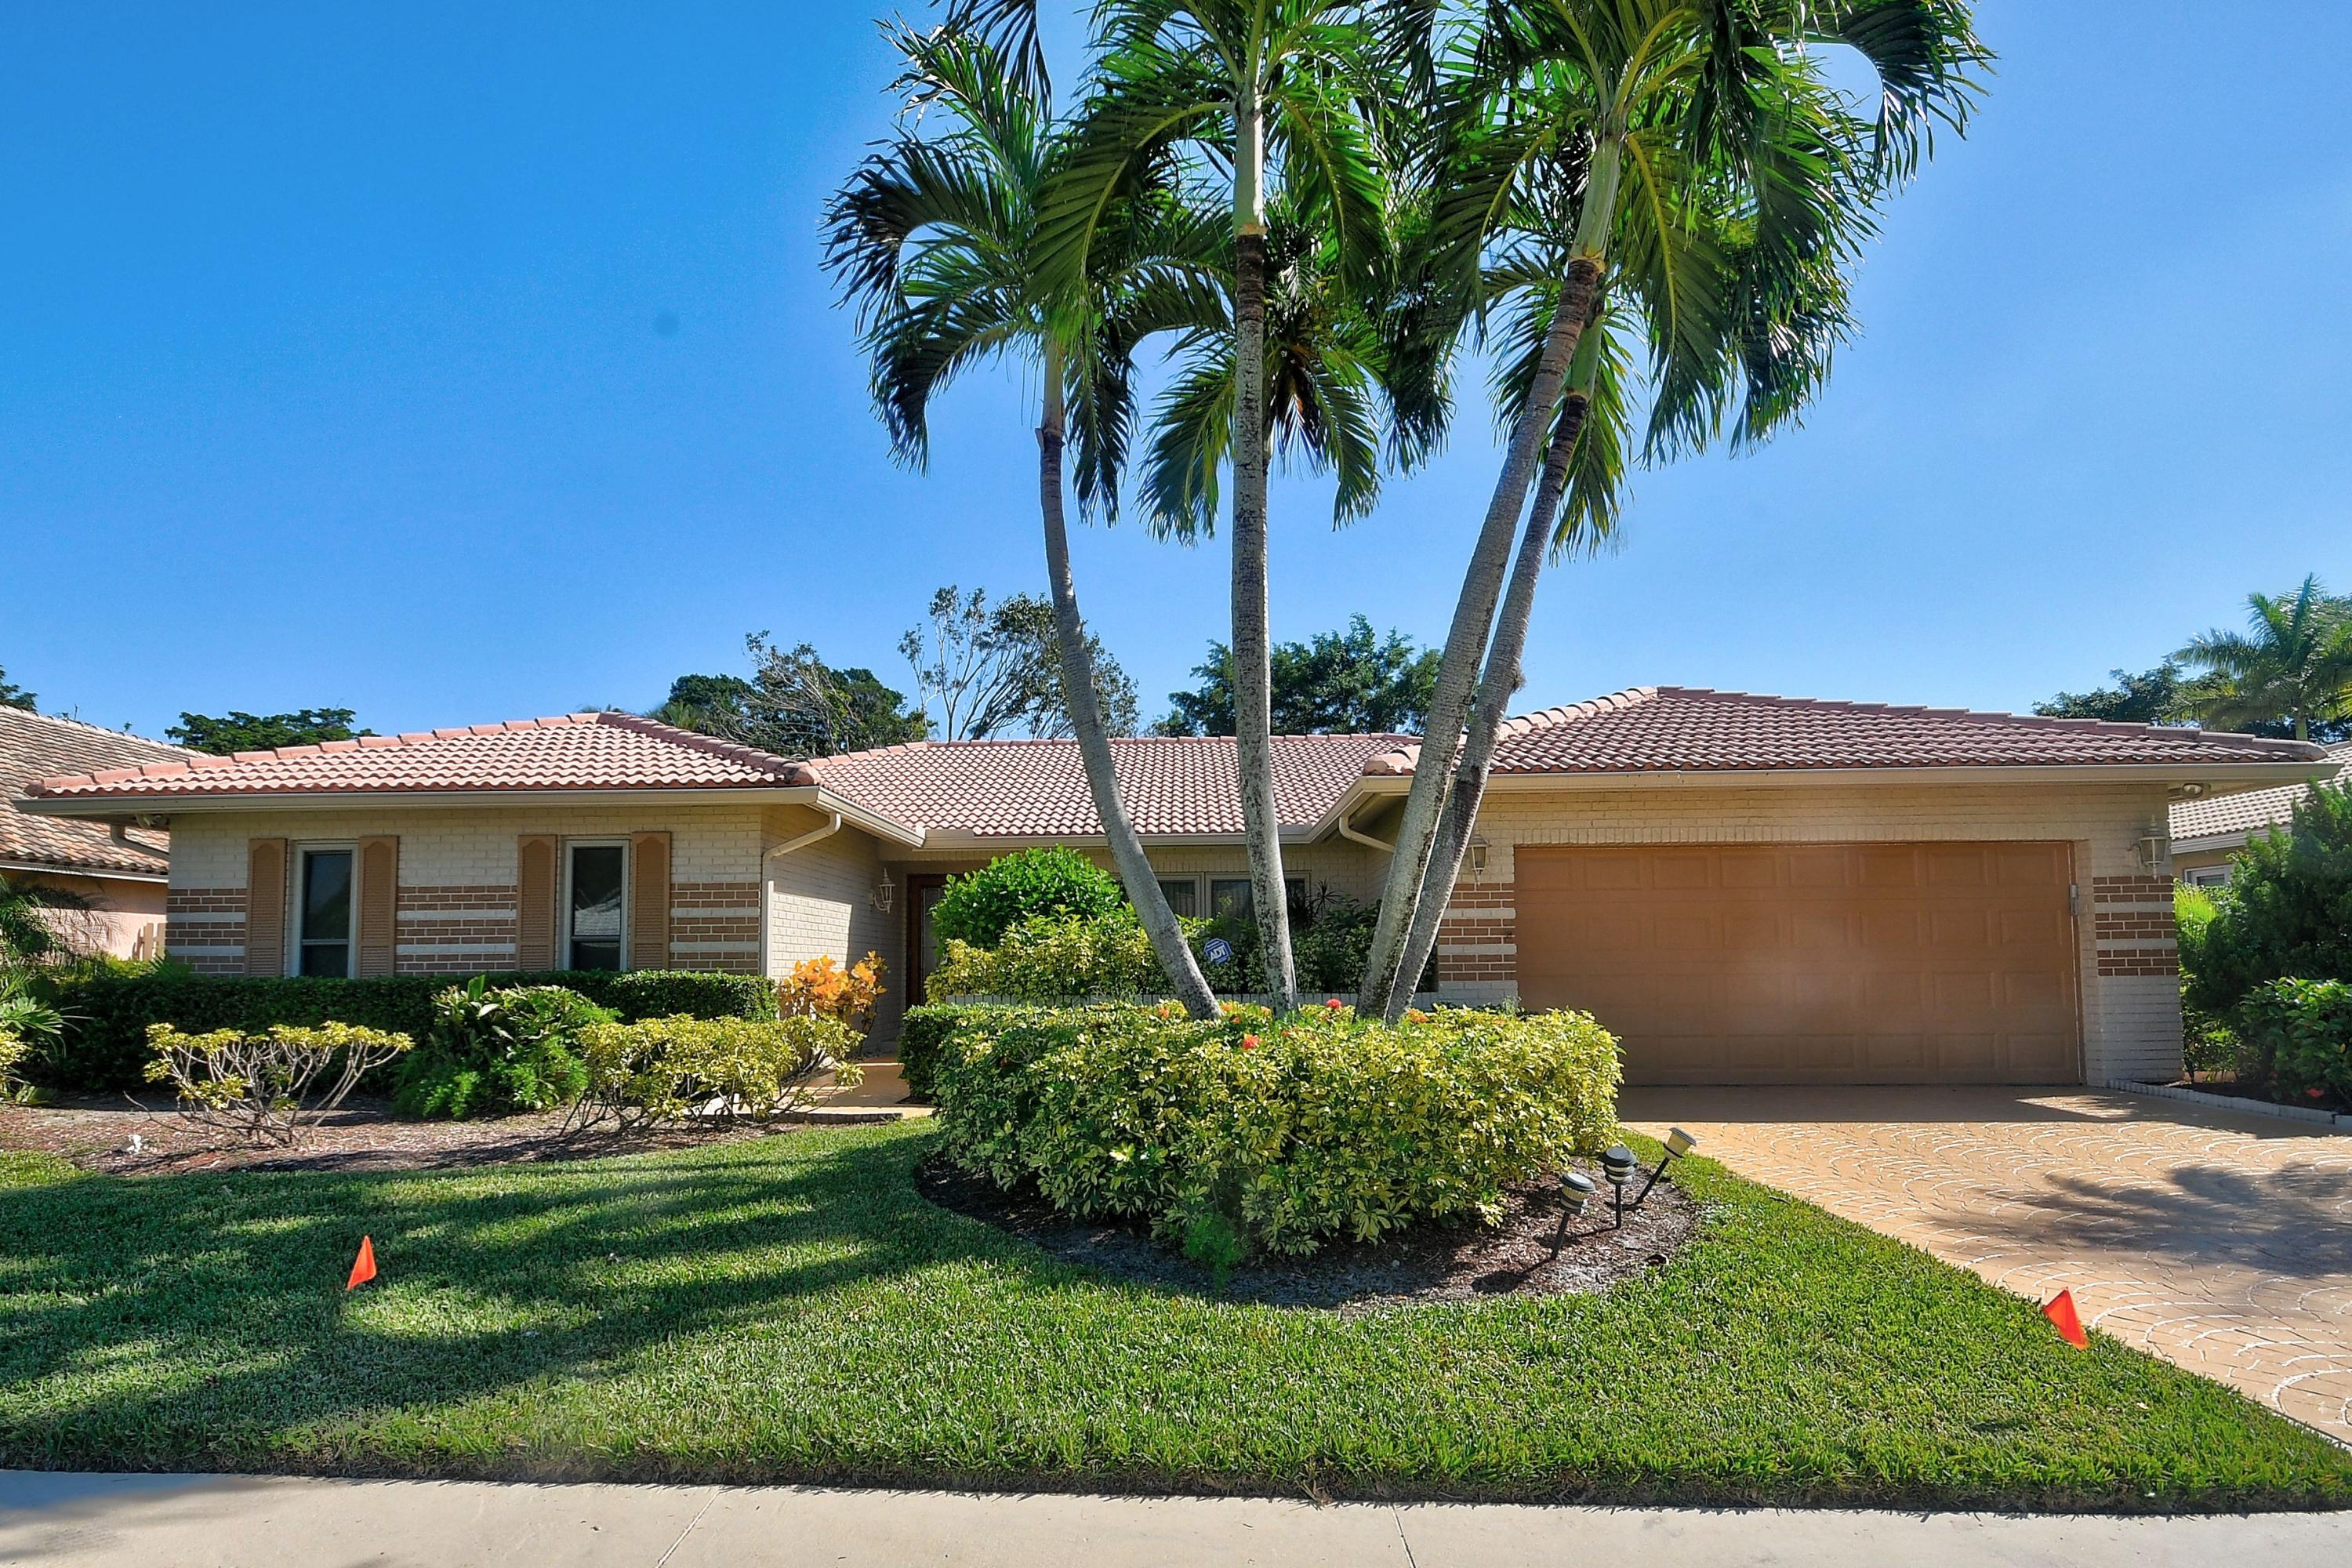 Home for sale in Boca Greens Boca Raton Florida